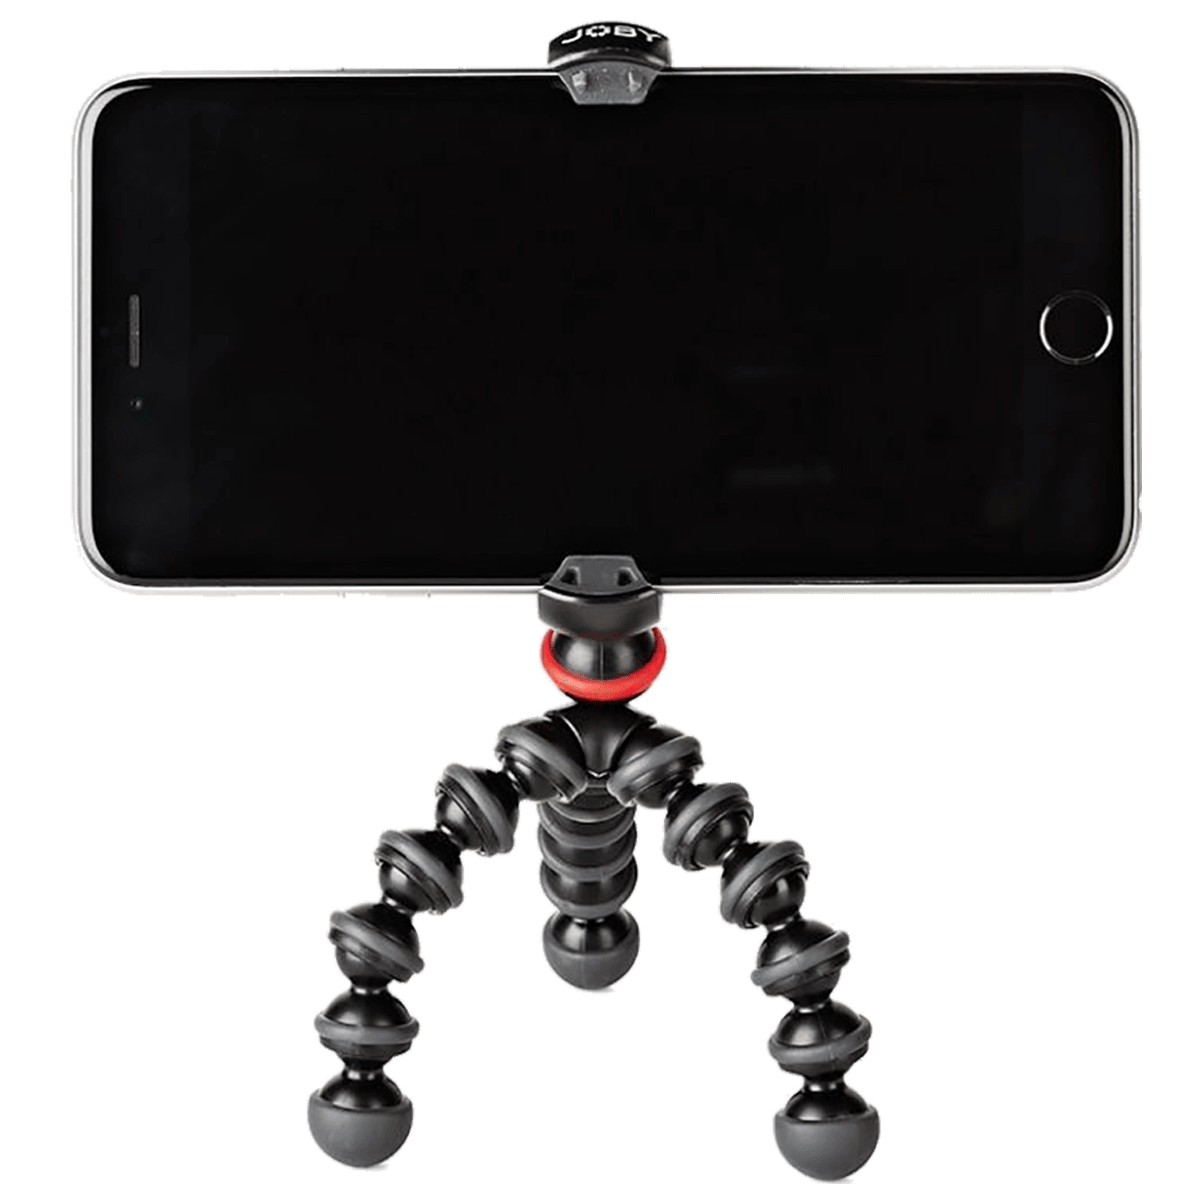 Joby GorillaPod Mobile Mini 13 cm Tripod for Mobile Phones (Rubberized Jaw Grips, JB01517-0WW, Charcoal Black)